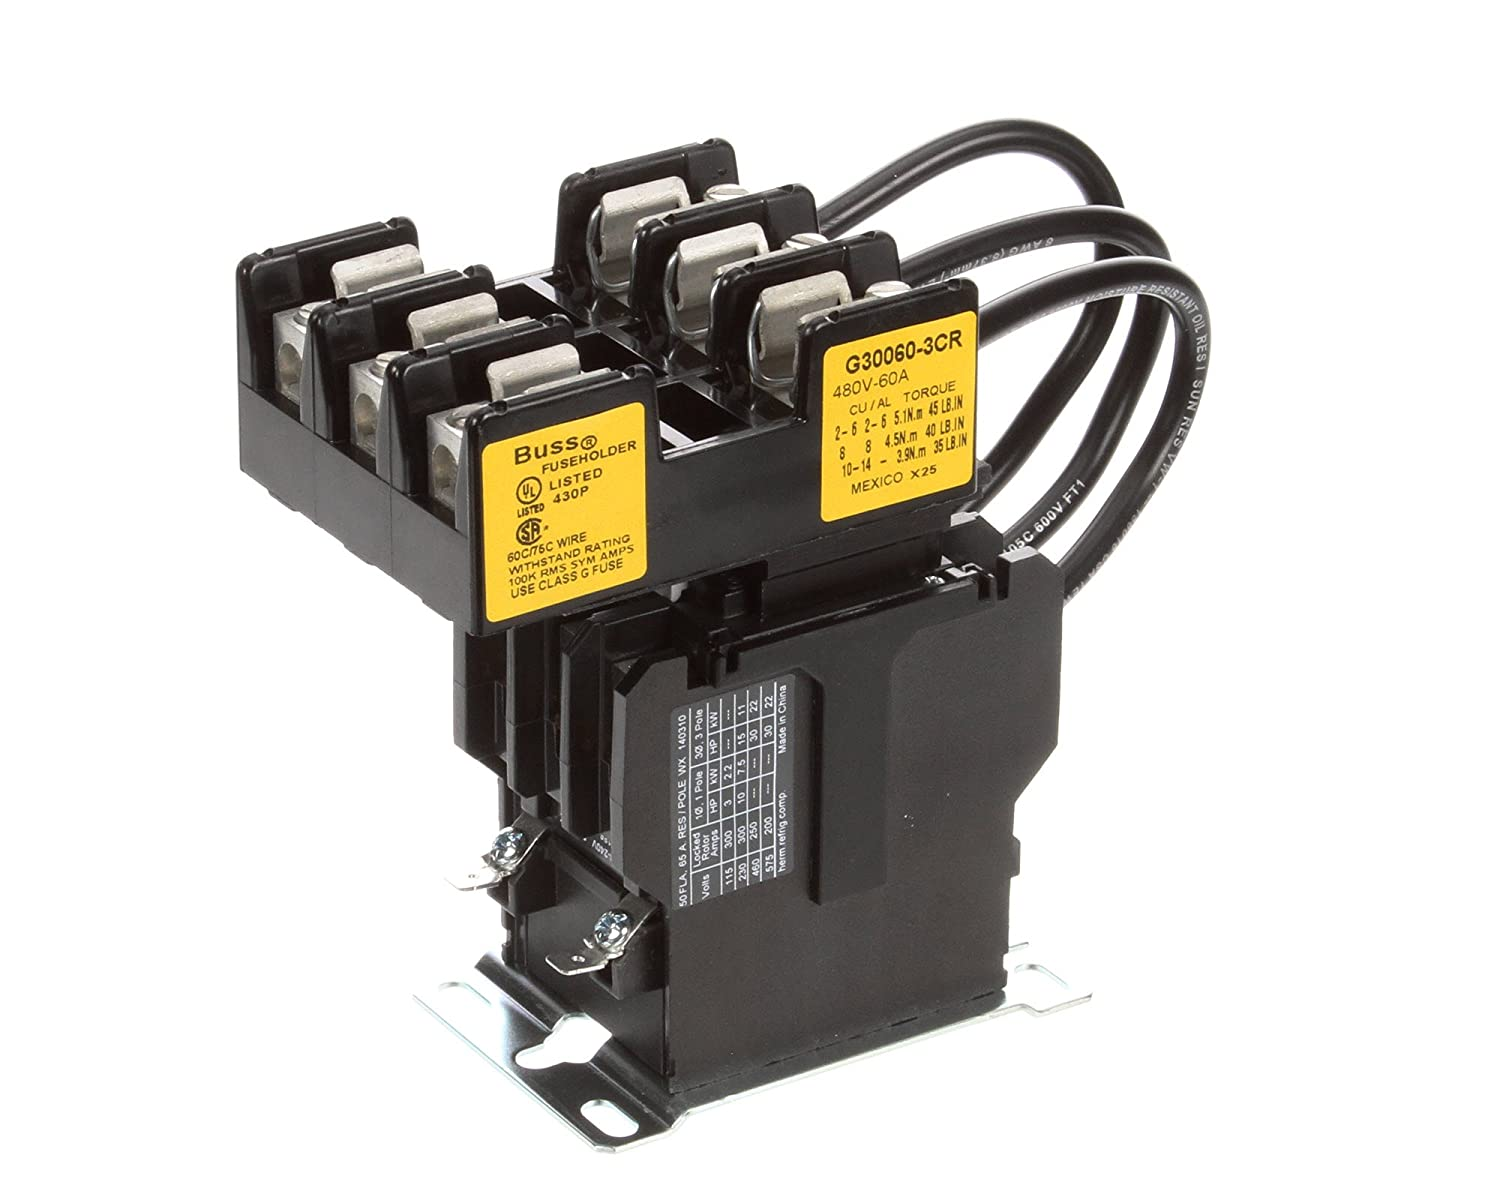 Stero Dishwasher P47-1824 Fusible 50A 220V Super sale period limited Max 58% OFF 3Pl Contactor